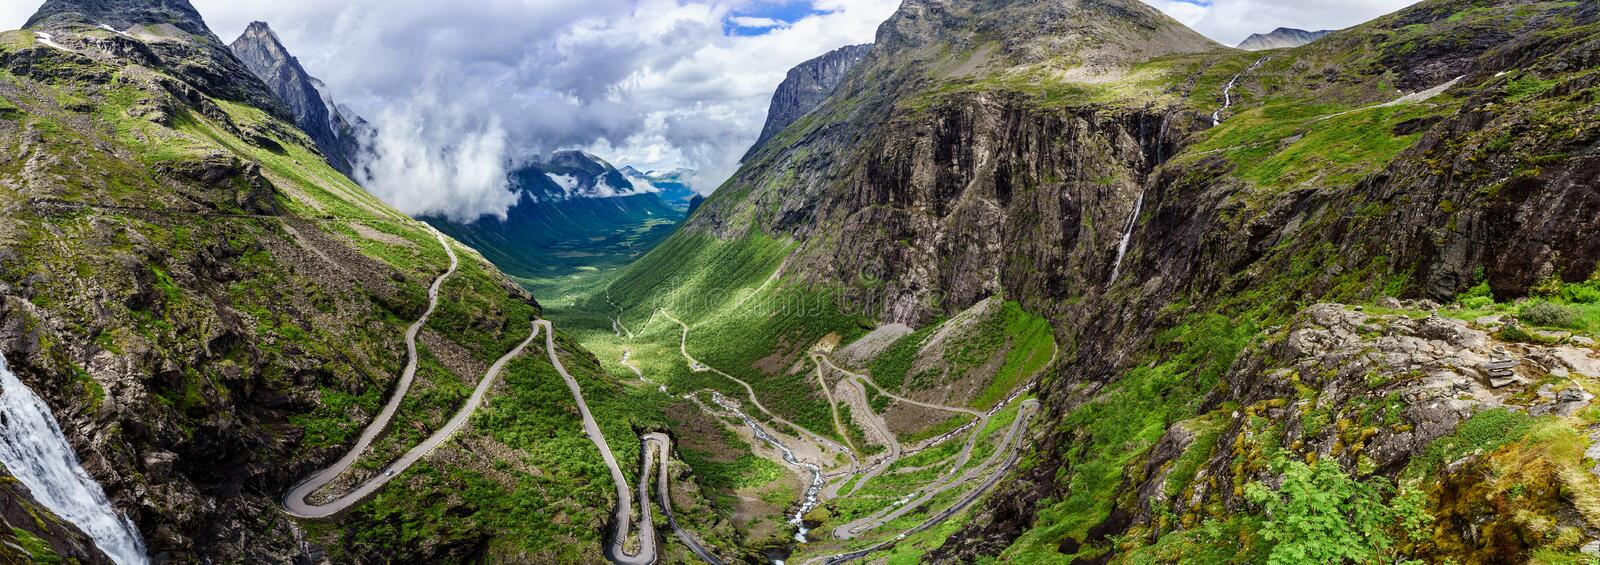 Troll's Path Trollstigen or Trollstigveien winding mountain road stock photo